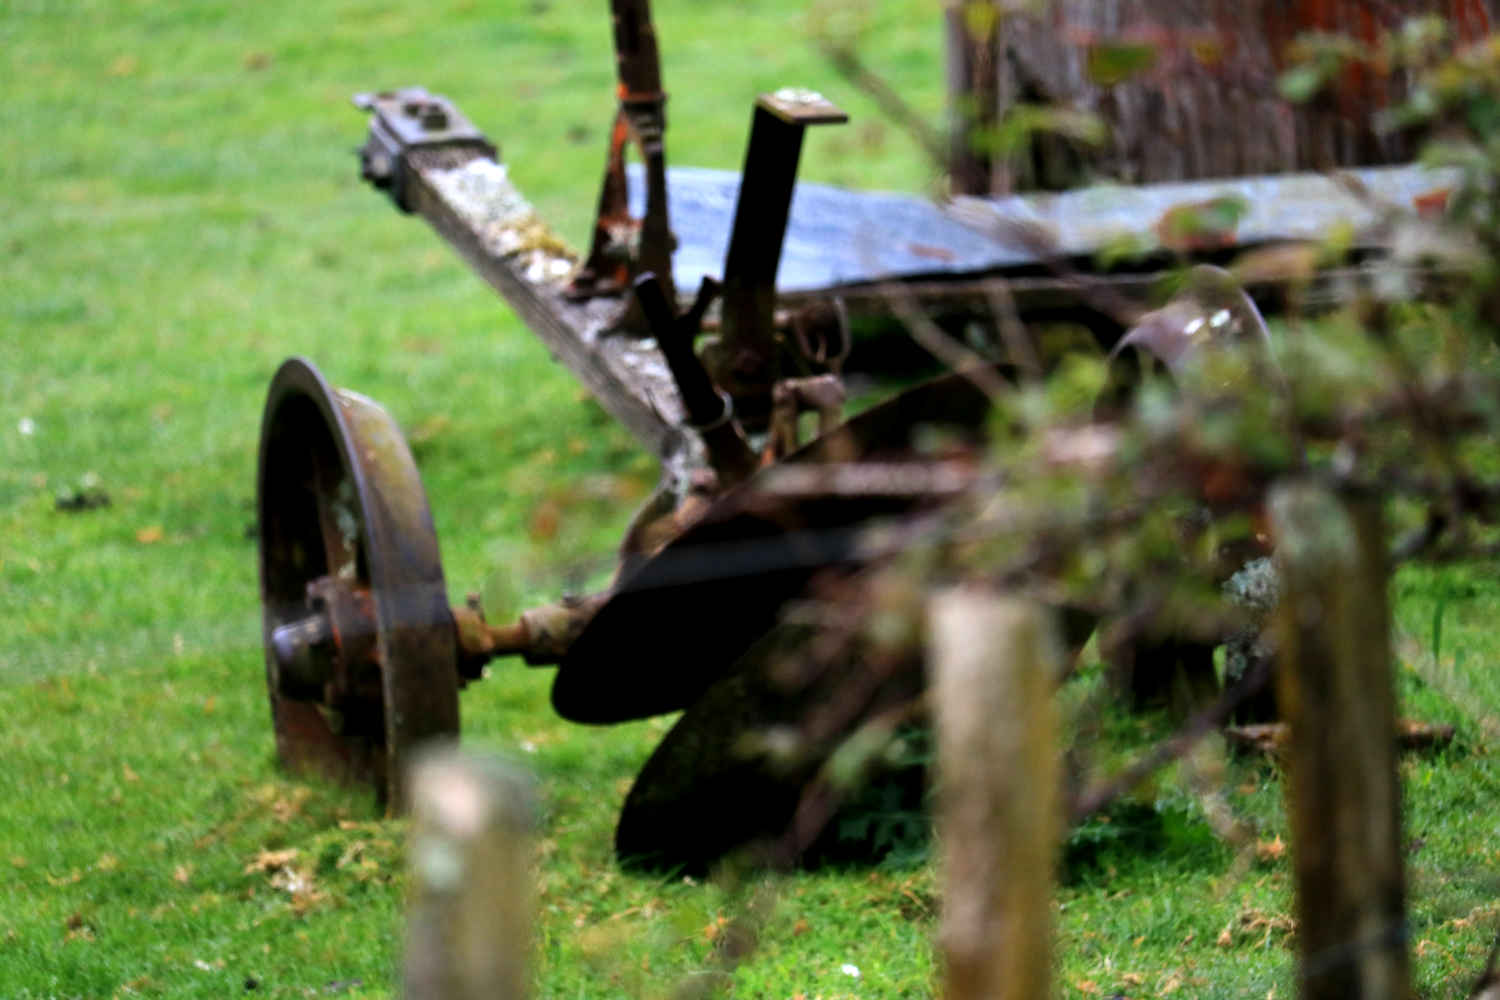 Agricultural equipment returning to nature, New Zealand